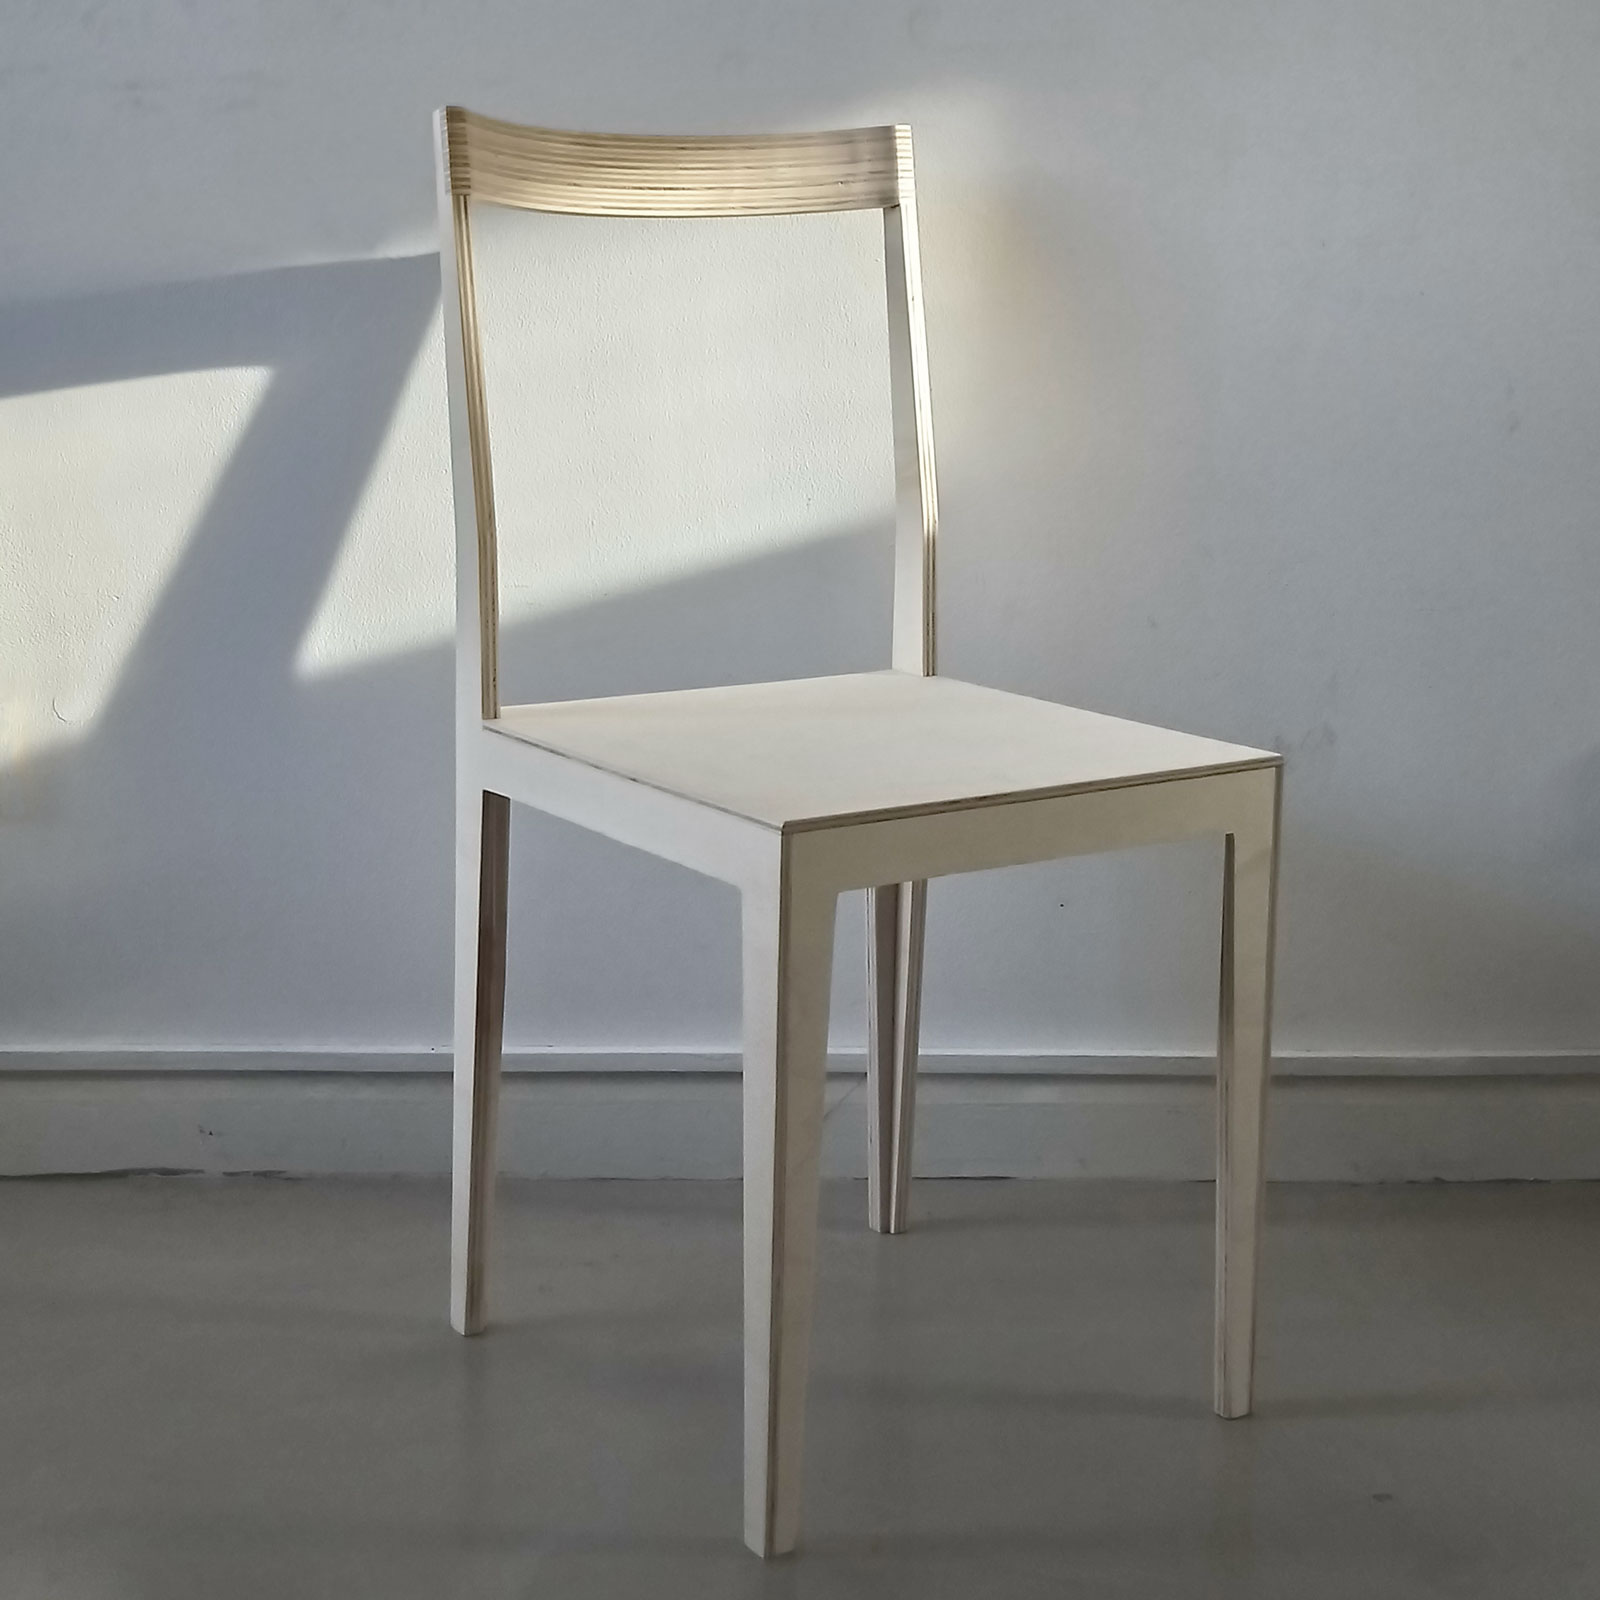 grr_094_plywoodchair_curved-back_01.jpg